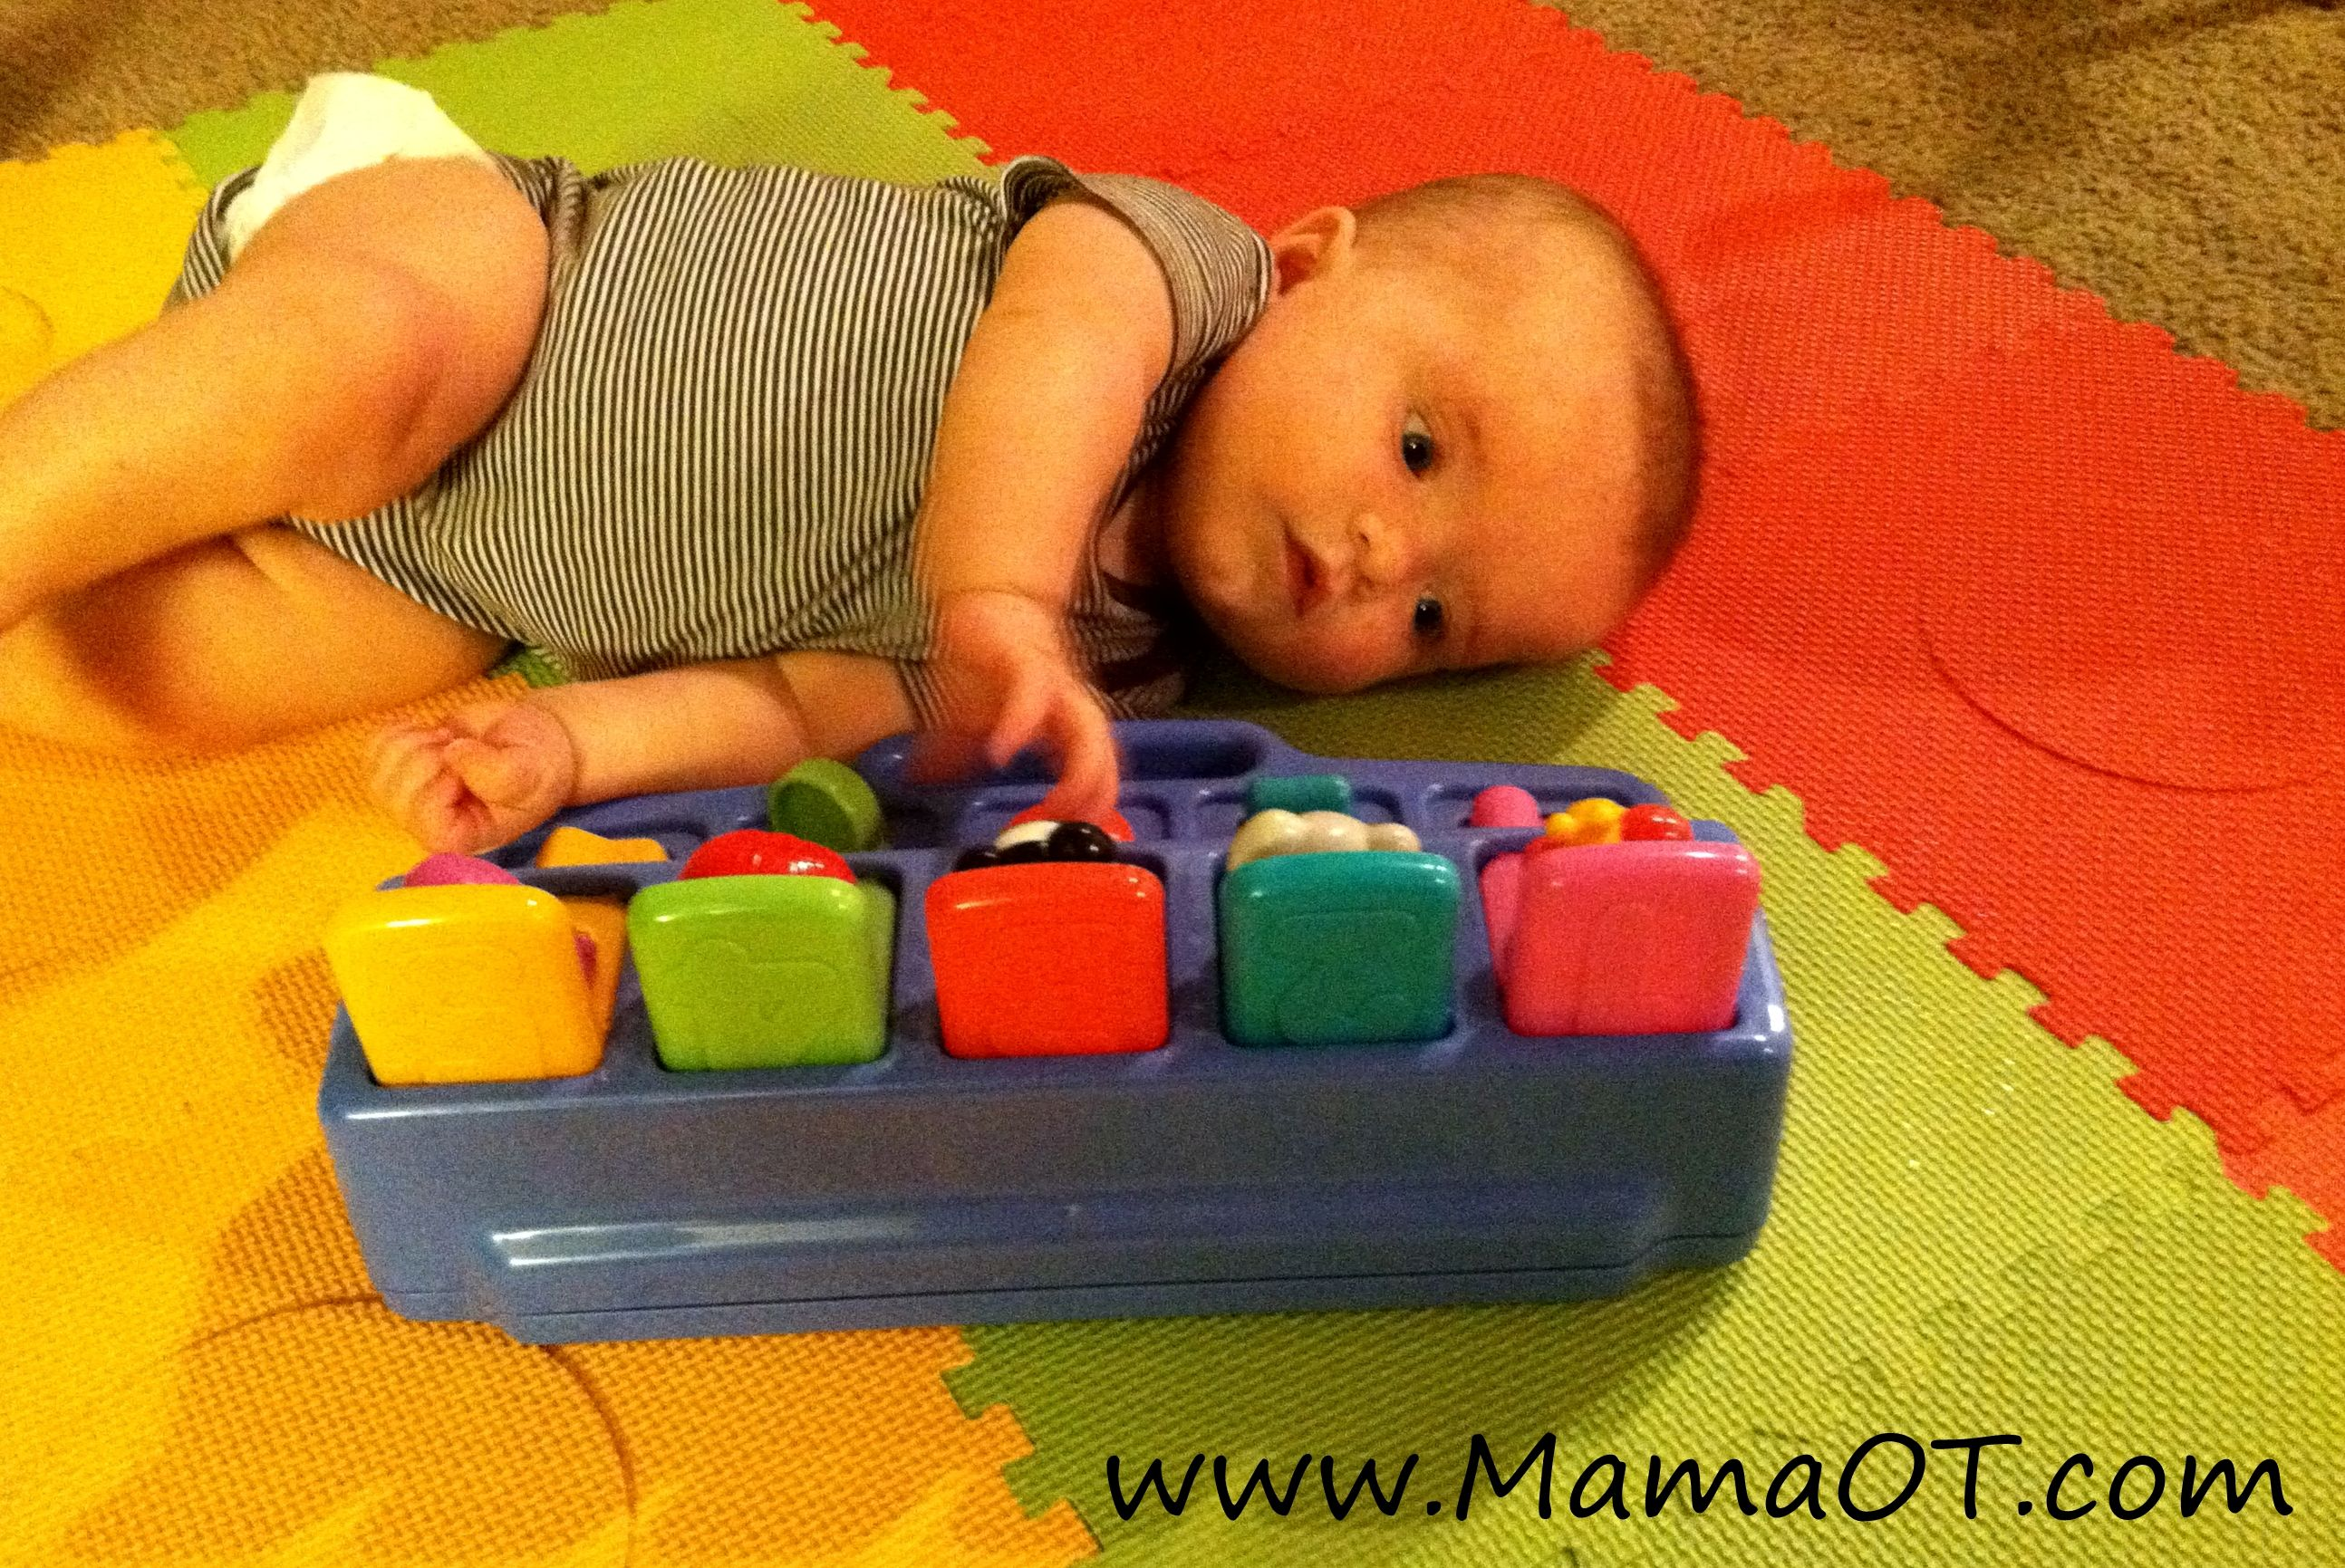 Newborn Toys Babycenter Help Baby Learn To Roll Over